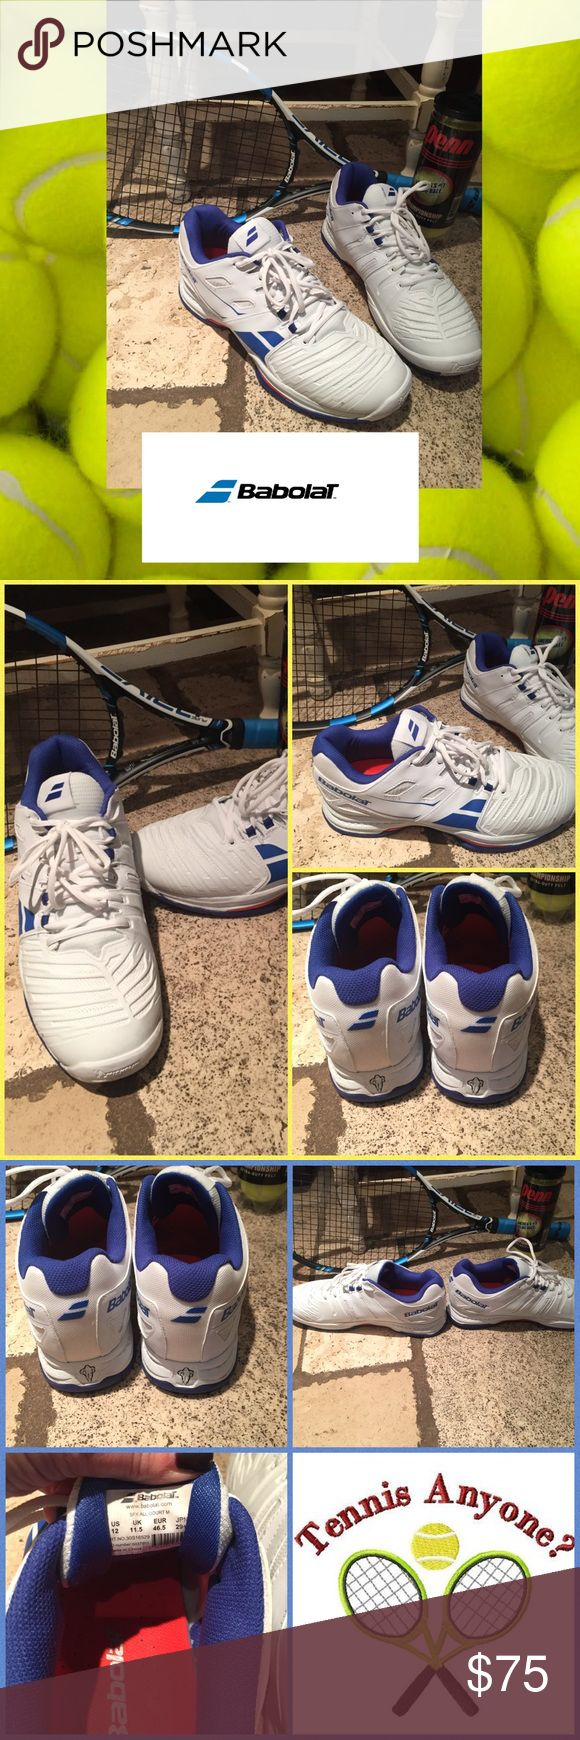 🎾Babolat SFX2-all court Men's tennis sneakers🎾 Men's Babolat SFX2- all court tennis sneakers. Were just bought, worn once but didn't work for my husband. In excellent condition. Babolat Shoes Sneakers